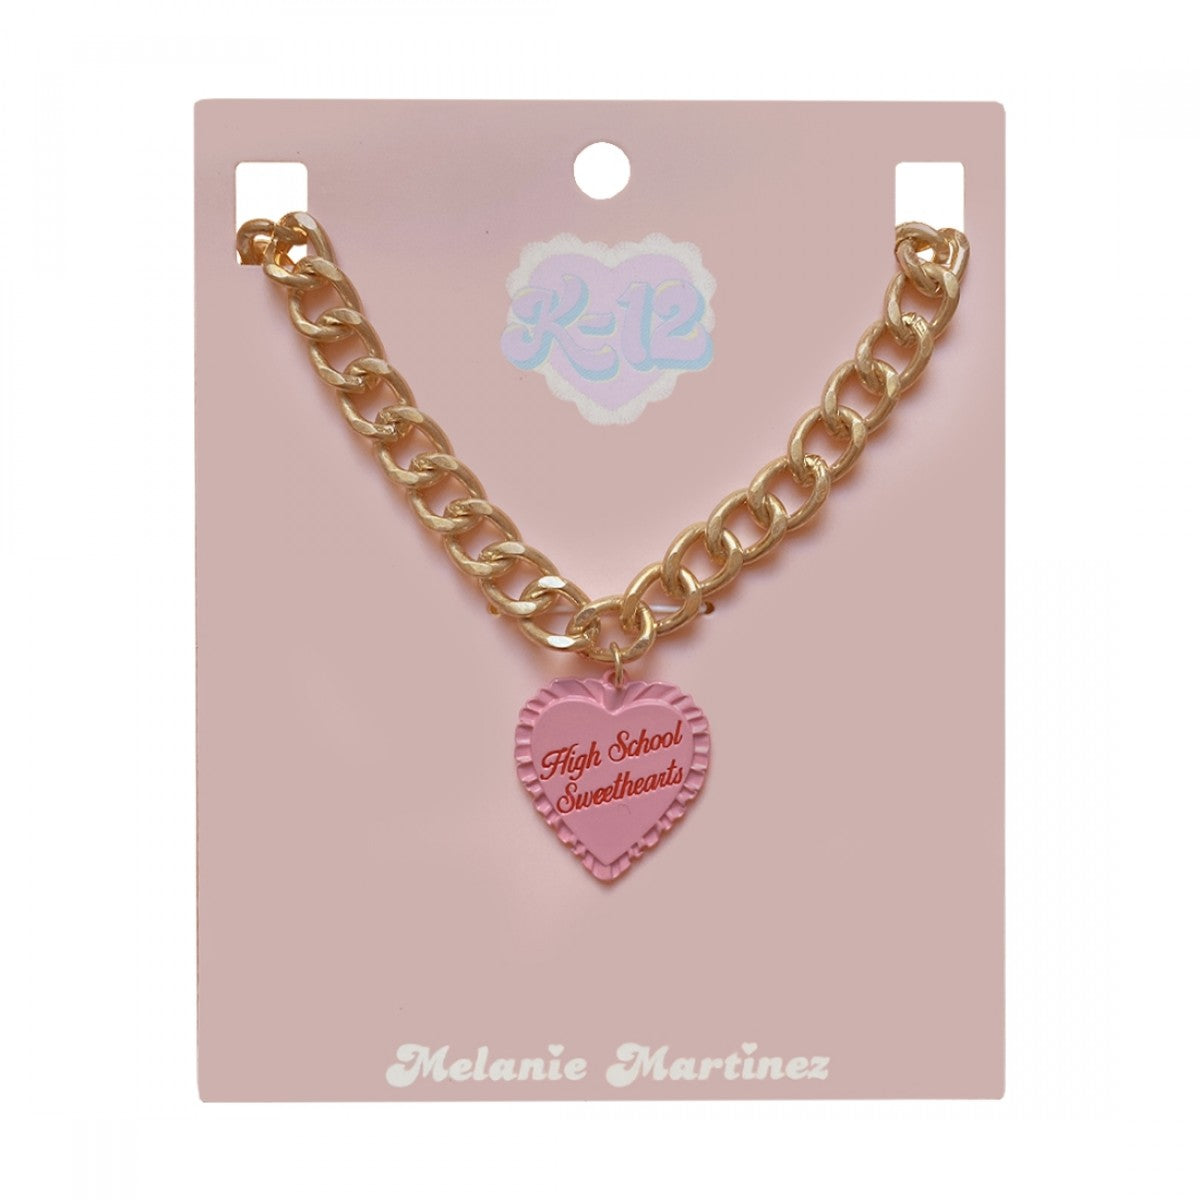 Melanie Martinez High School Sweetheart Necklace